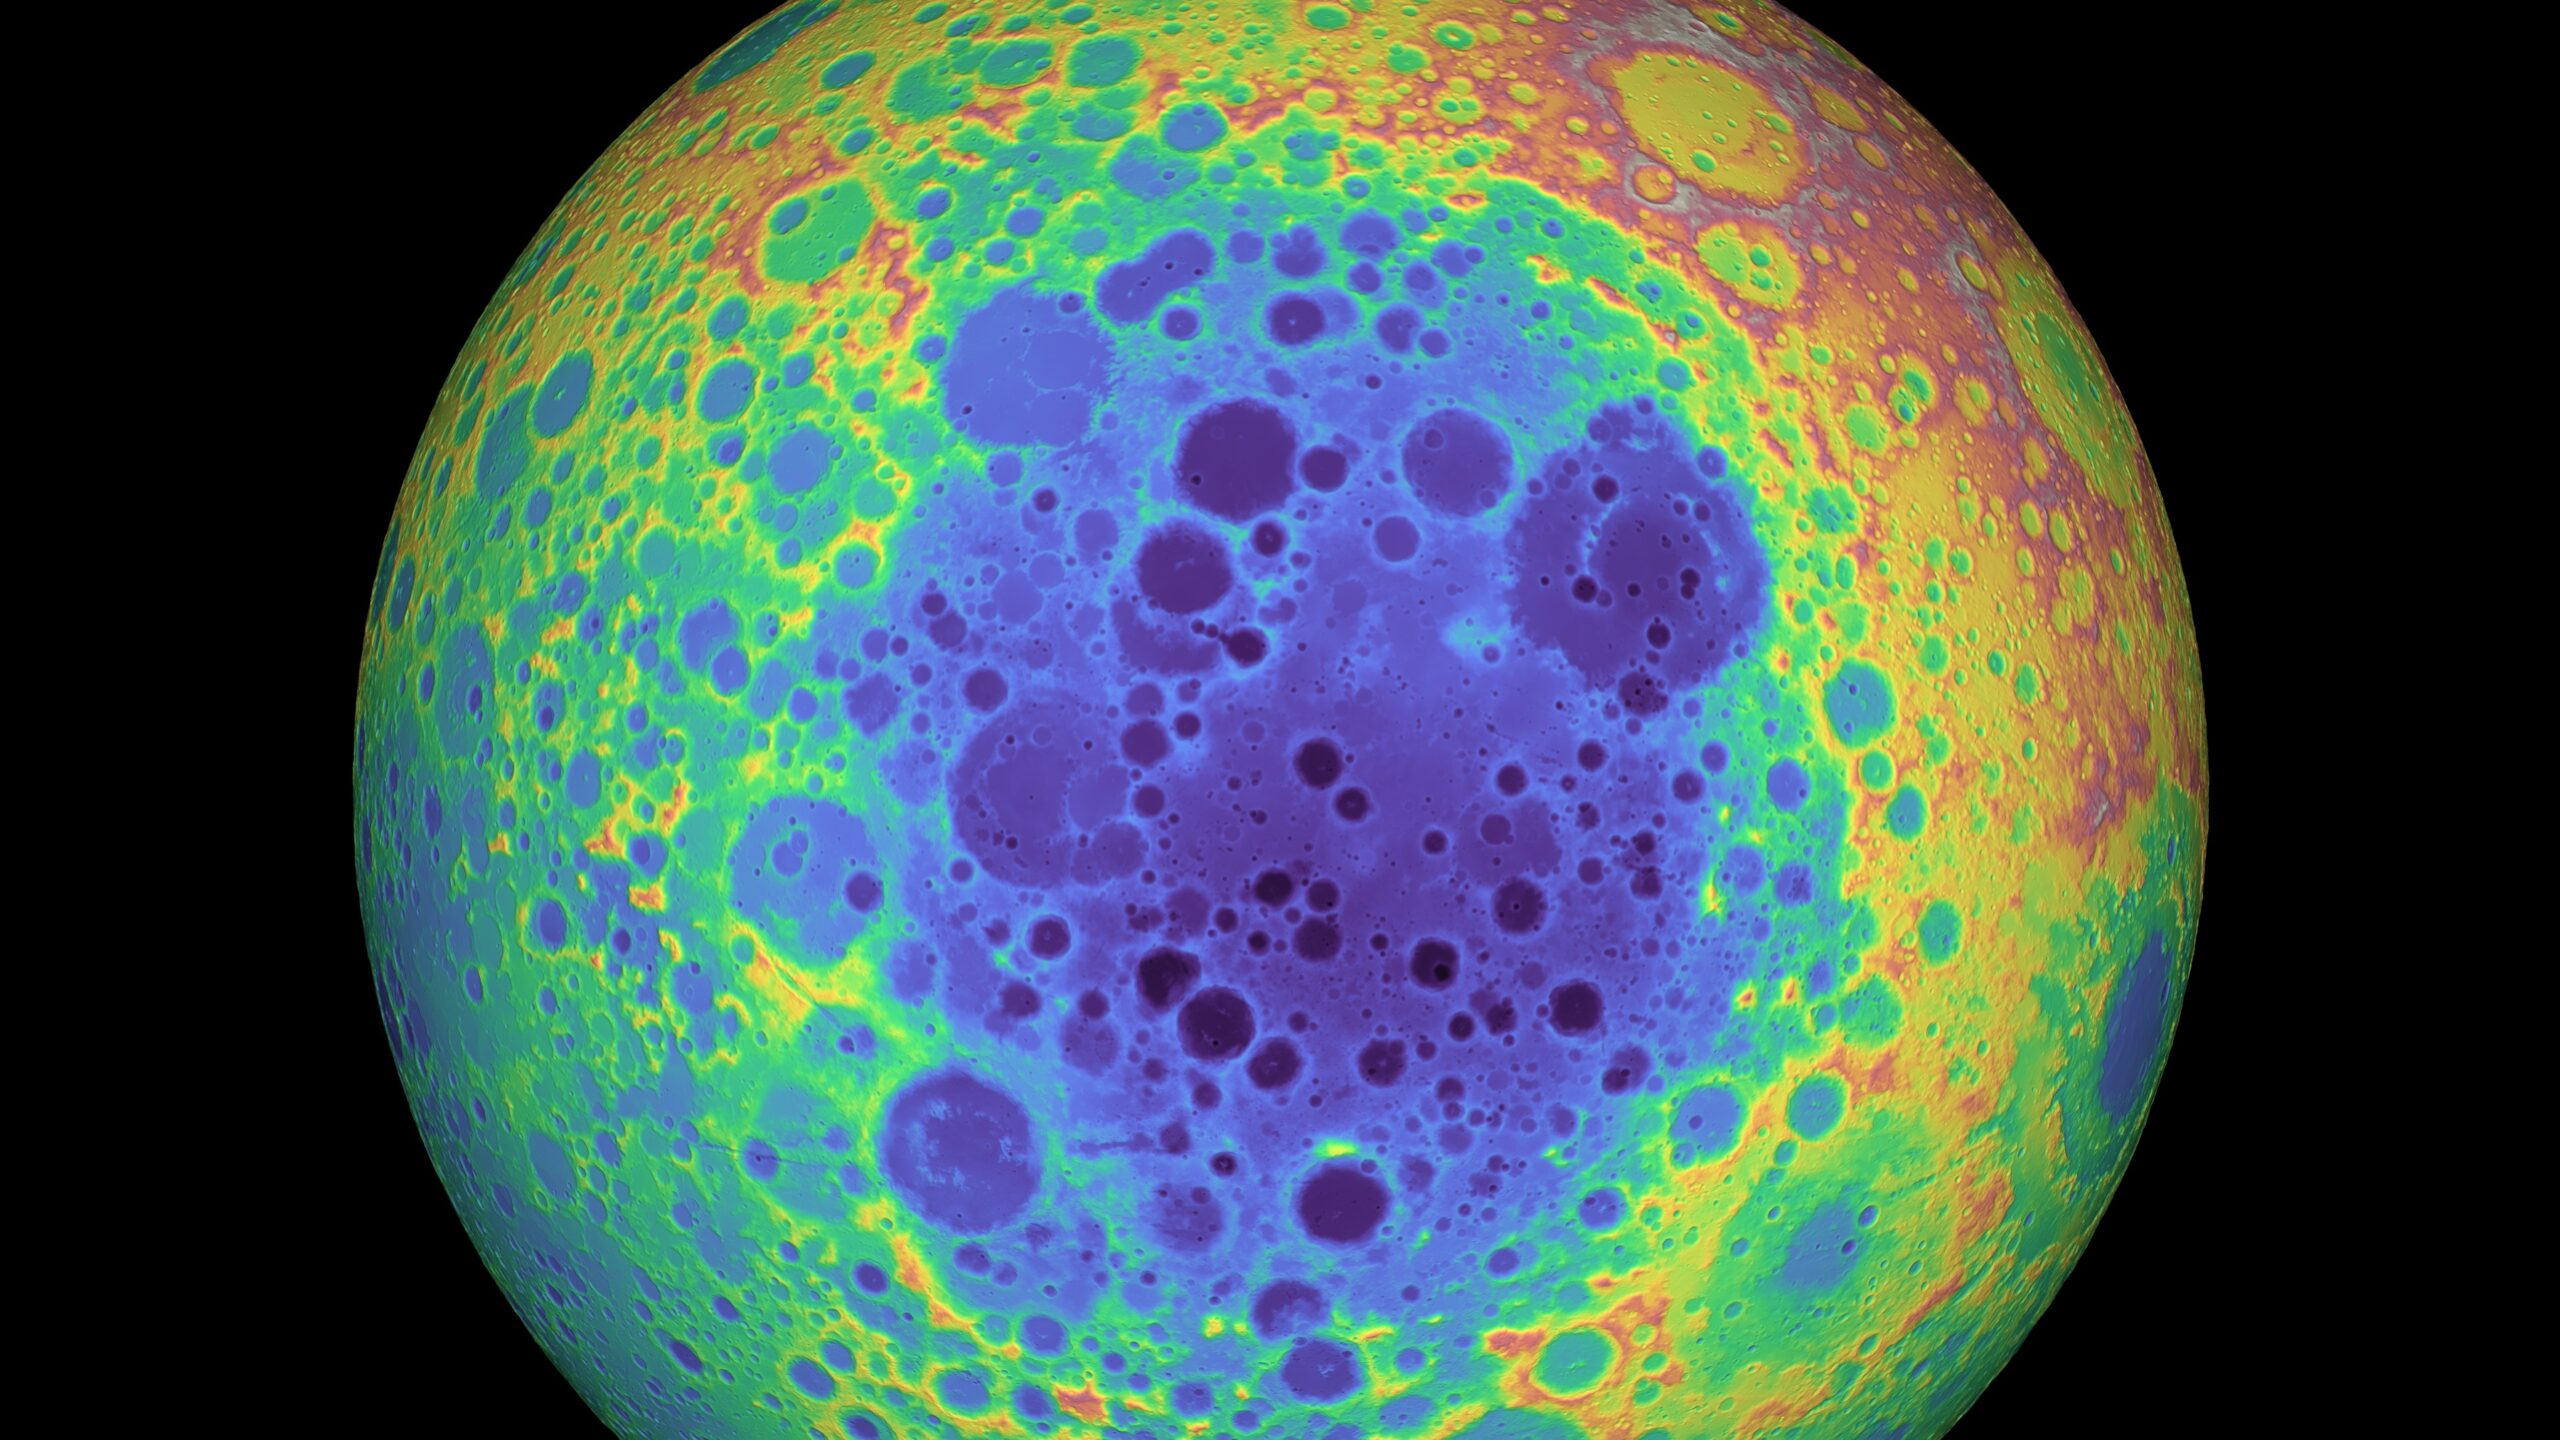 The moon's south pole is hiding something massive and mysterious